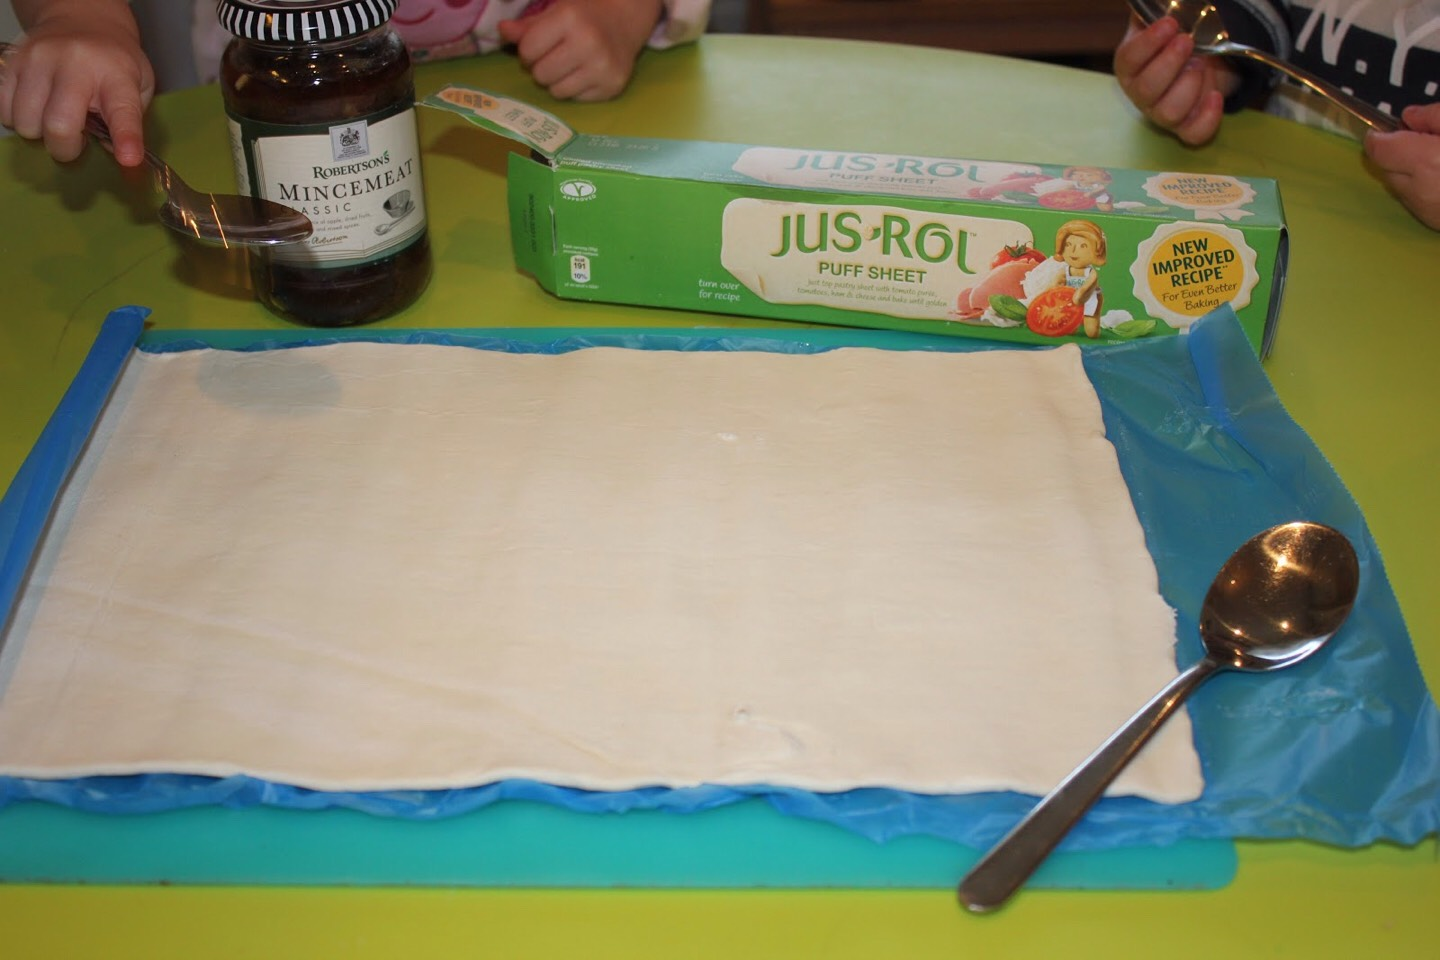 •just rol puff pastry